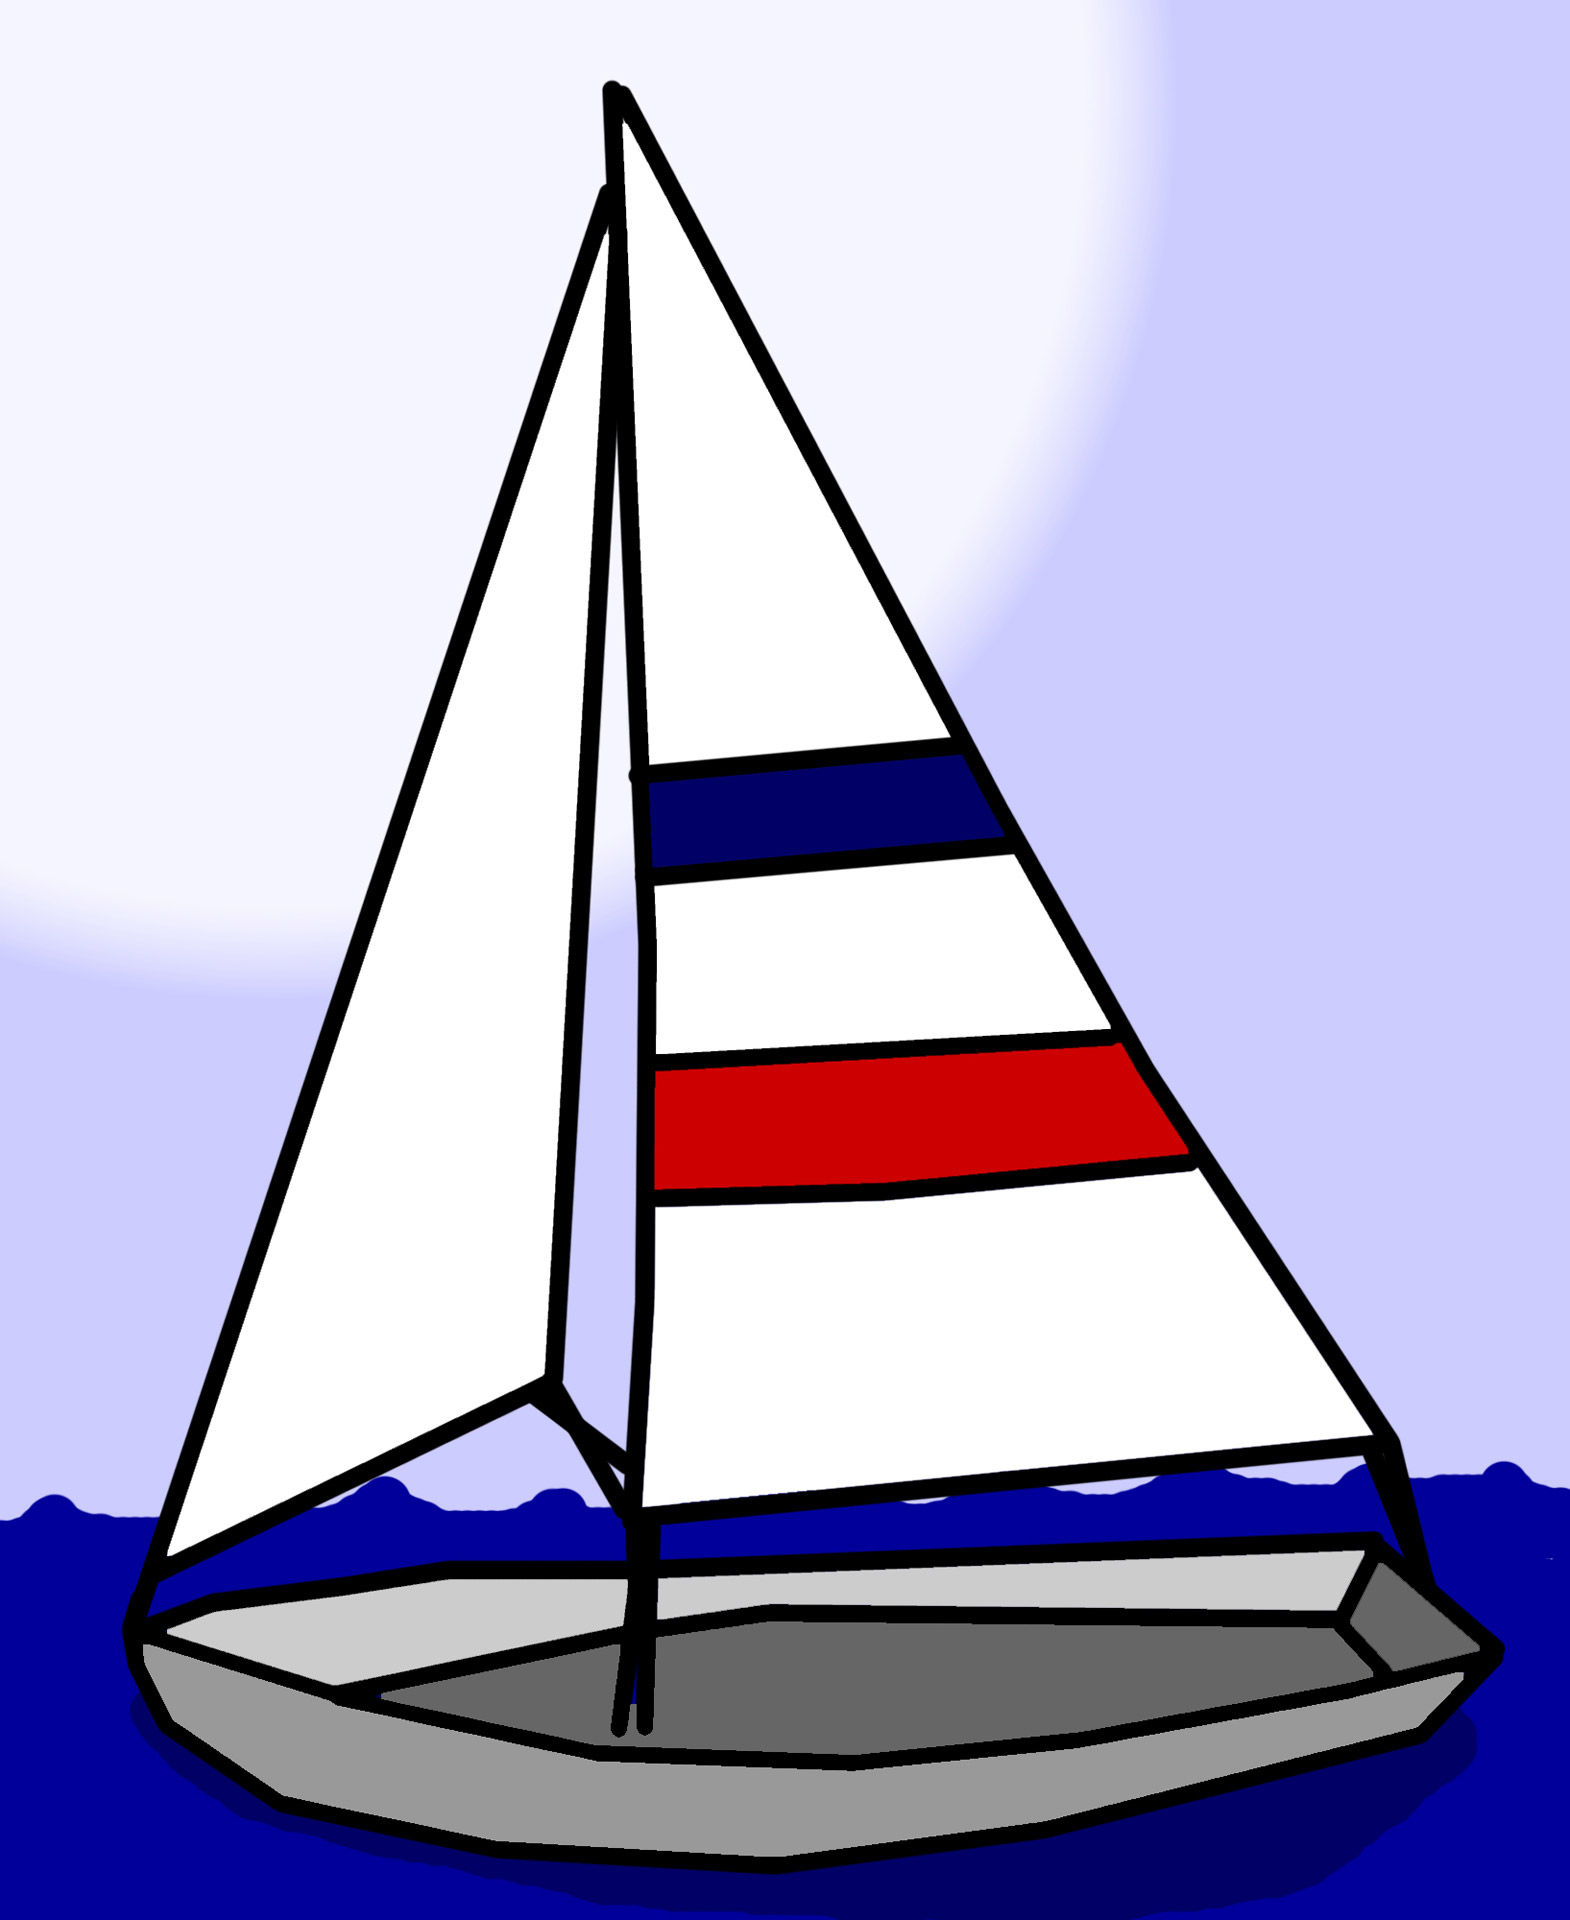 1570x1920 Sailboat Clipart 0 Sailboat Boat Free Clip Art 2 2